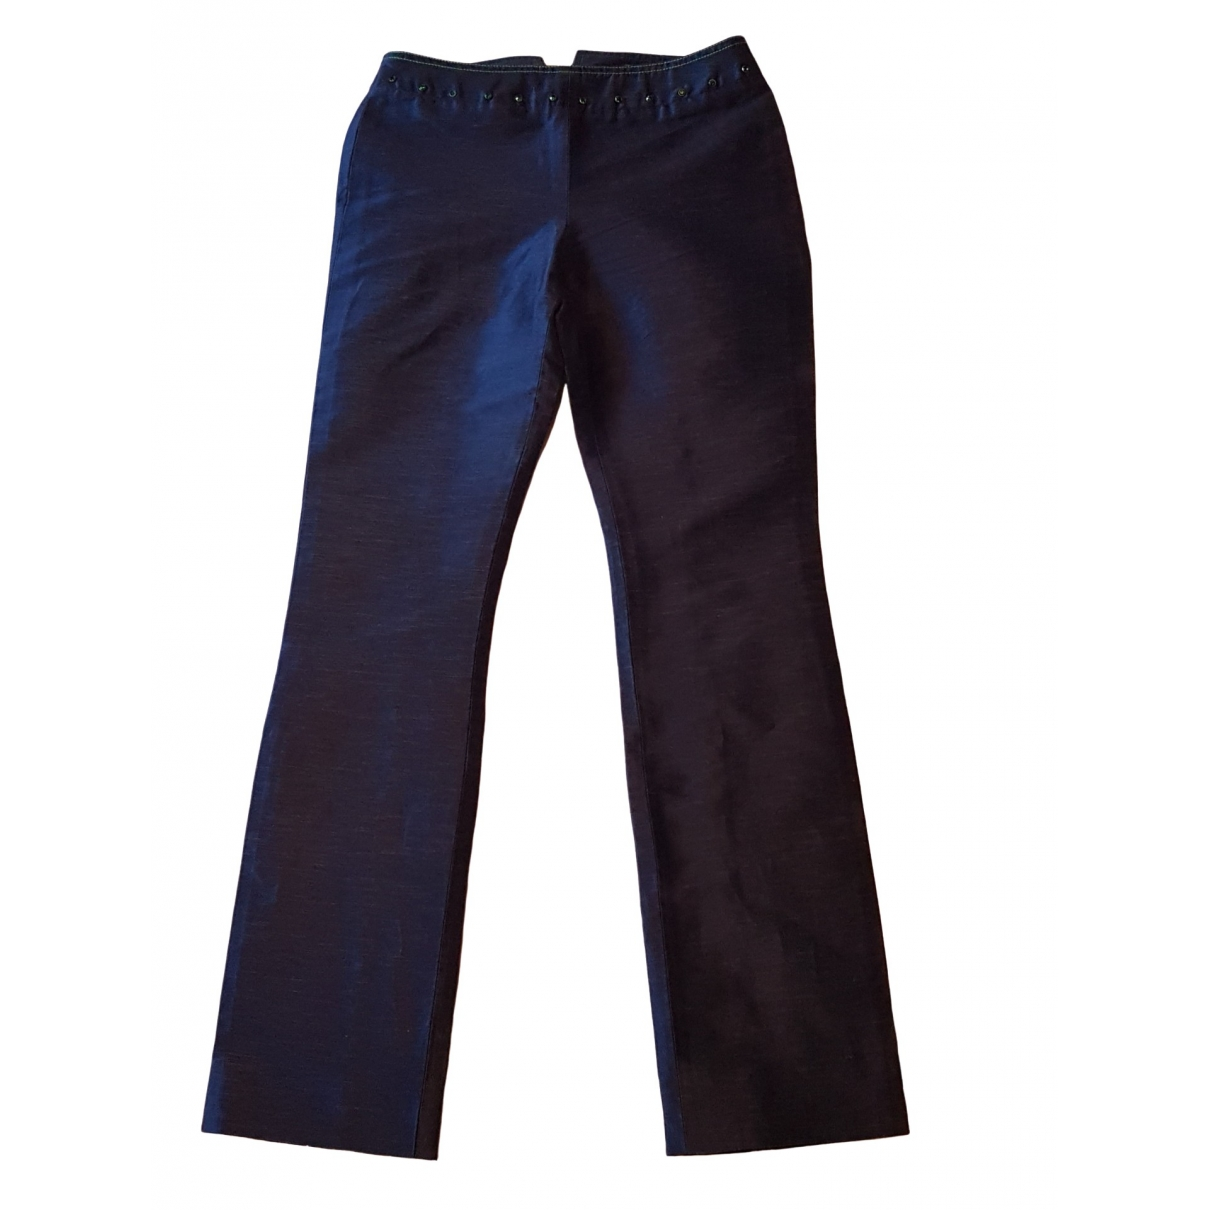 Gianni Versace \N Blue Cotton Trousers for Women 38 IT